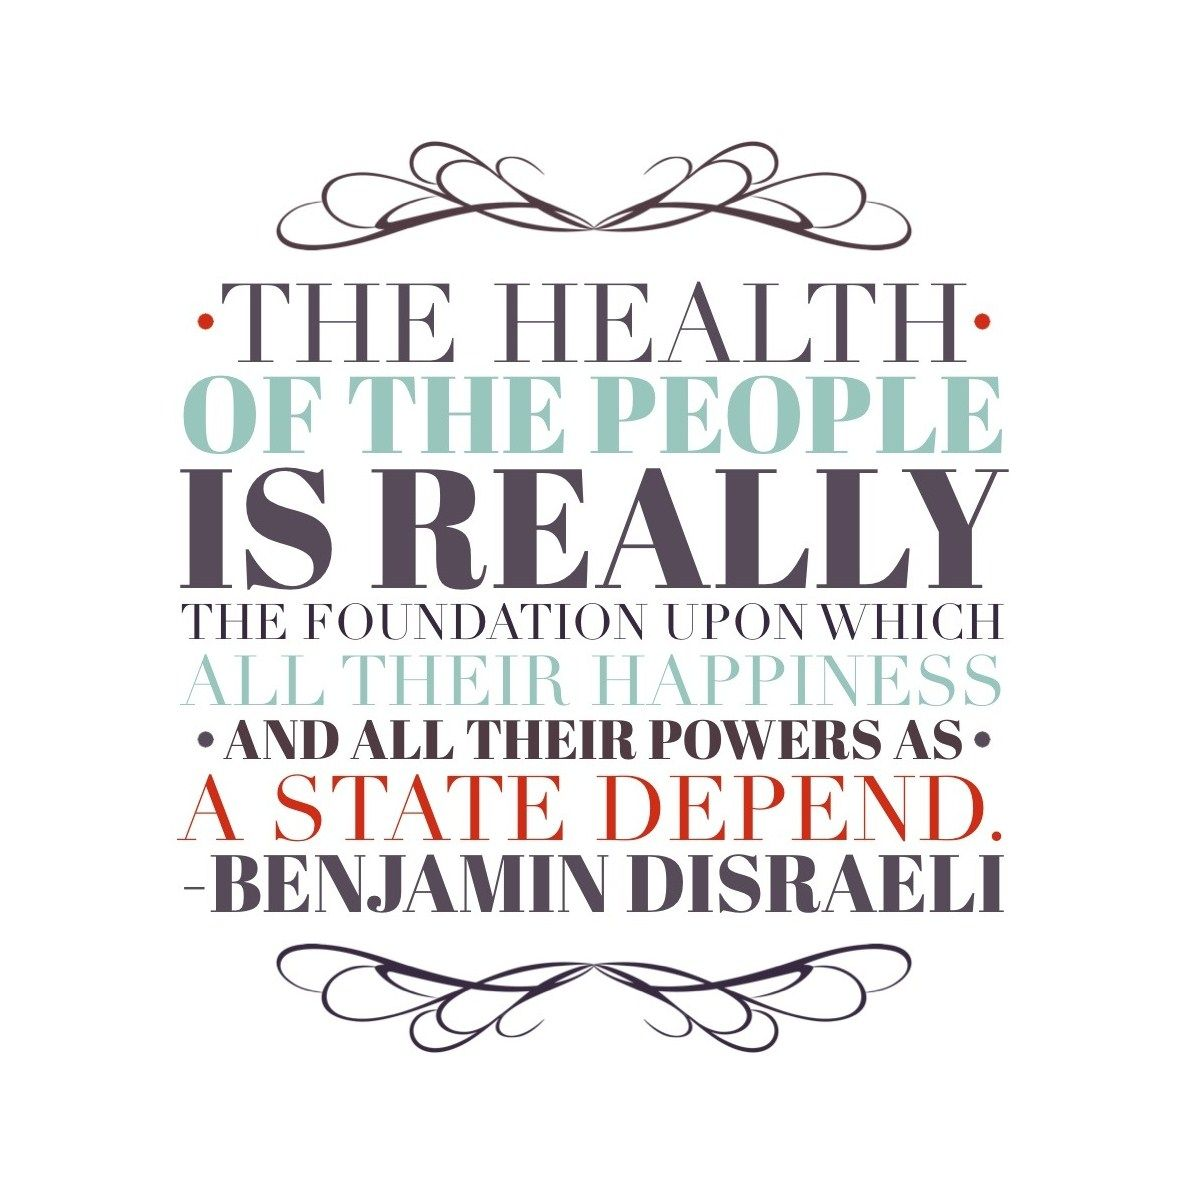 health and wellness quotes for 2021